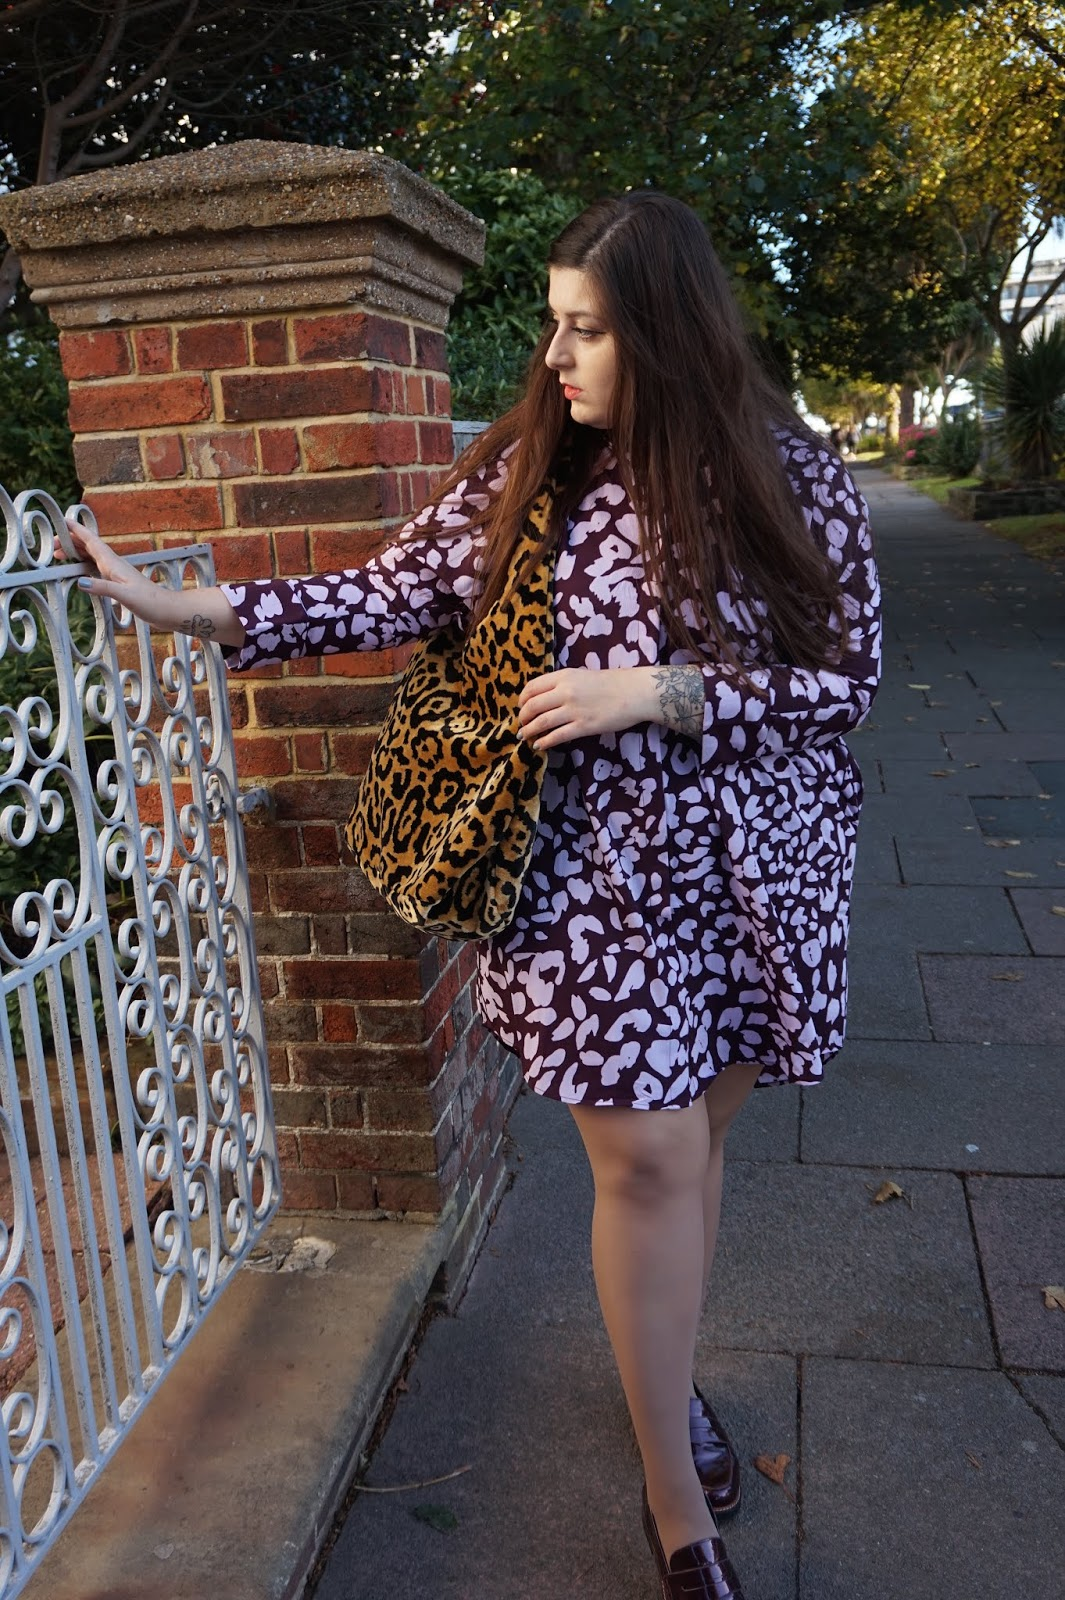 47a7789095 Some people think that wearing one item of clothing in bold leopard print  is brave.. so naturally